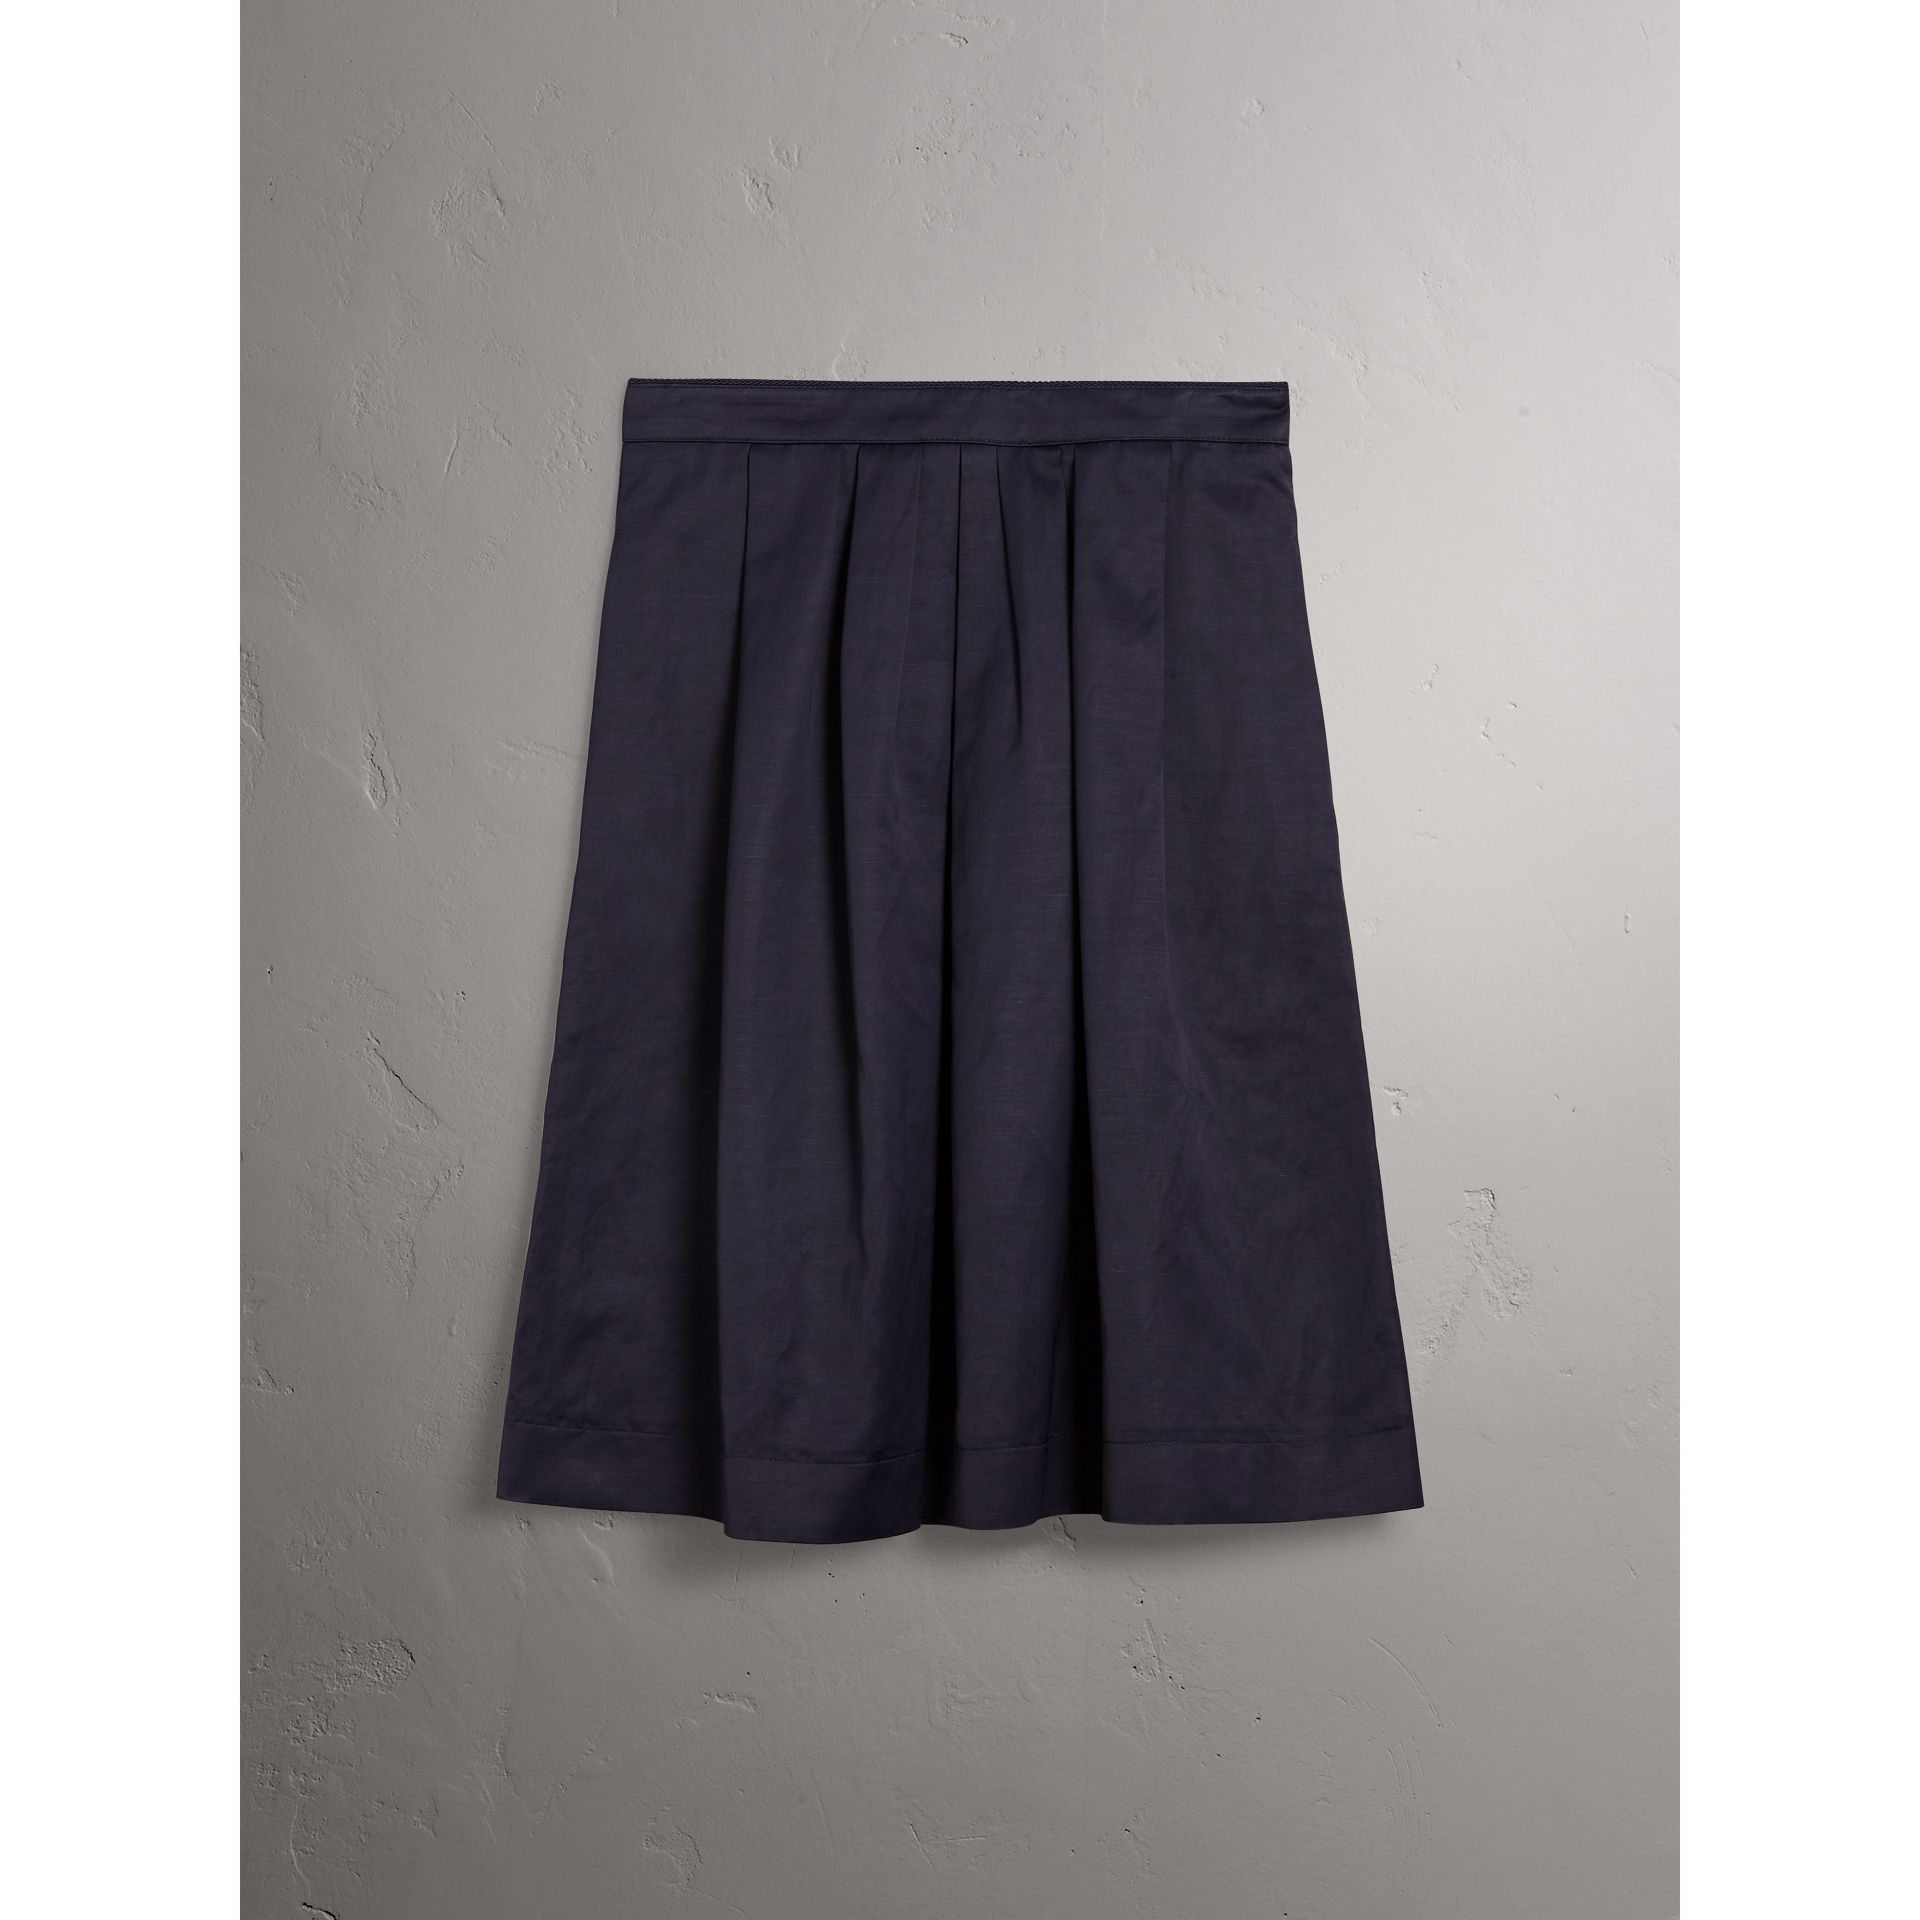 Pleated Linen Cotton Blend Skirt in Navy - Women | Burberry United Kingdom - gallery image 4